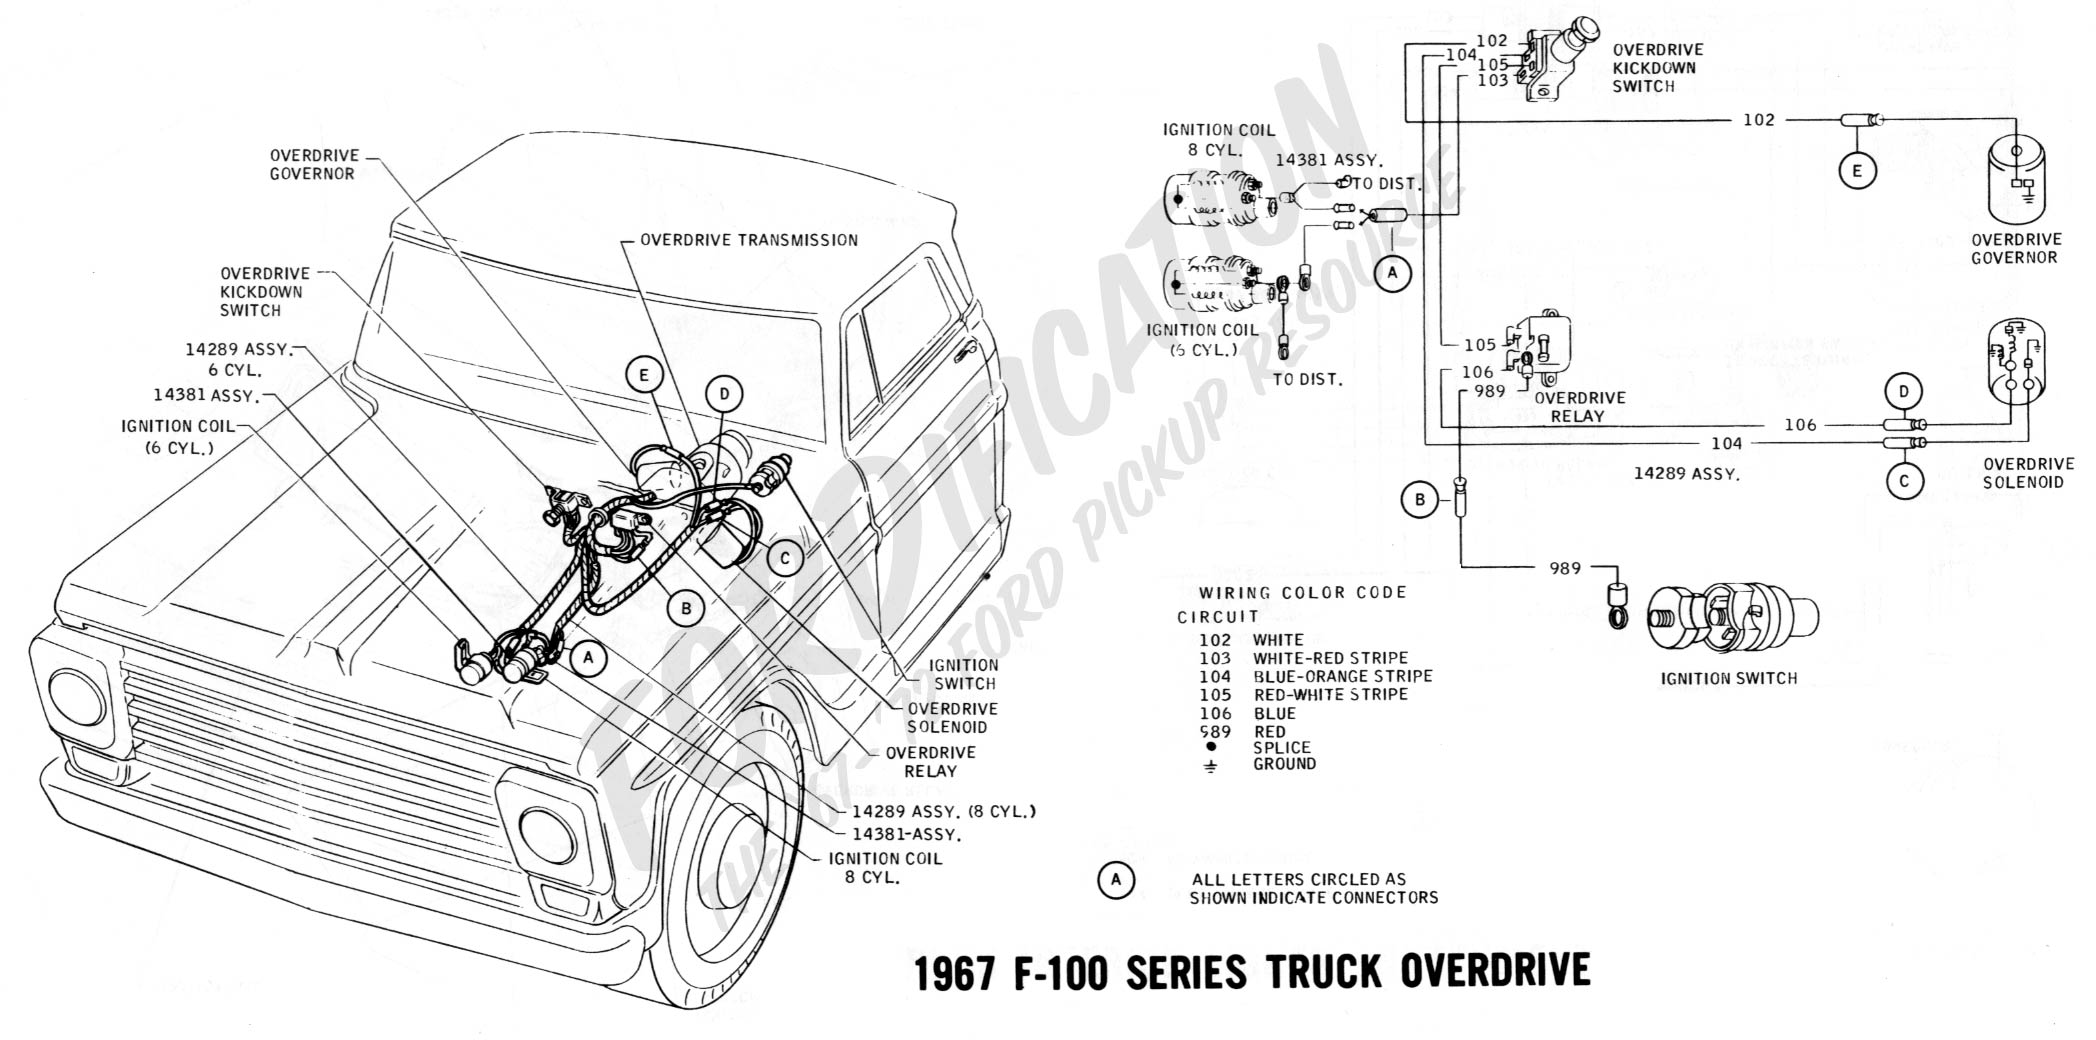 Ford 1967 Truck Wiring Diagram Diagrams Box 1973 Firebird Technical Drawings And Schematics Section H 1965 F100 F